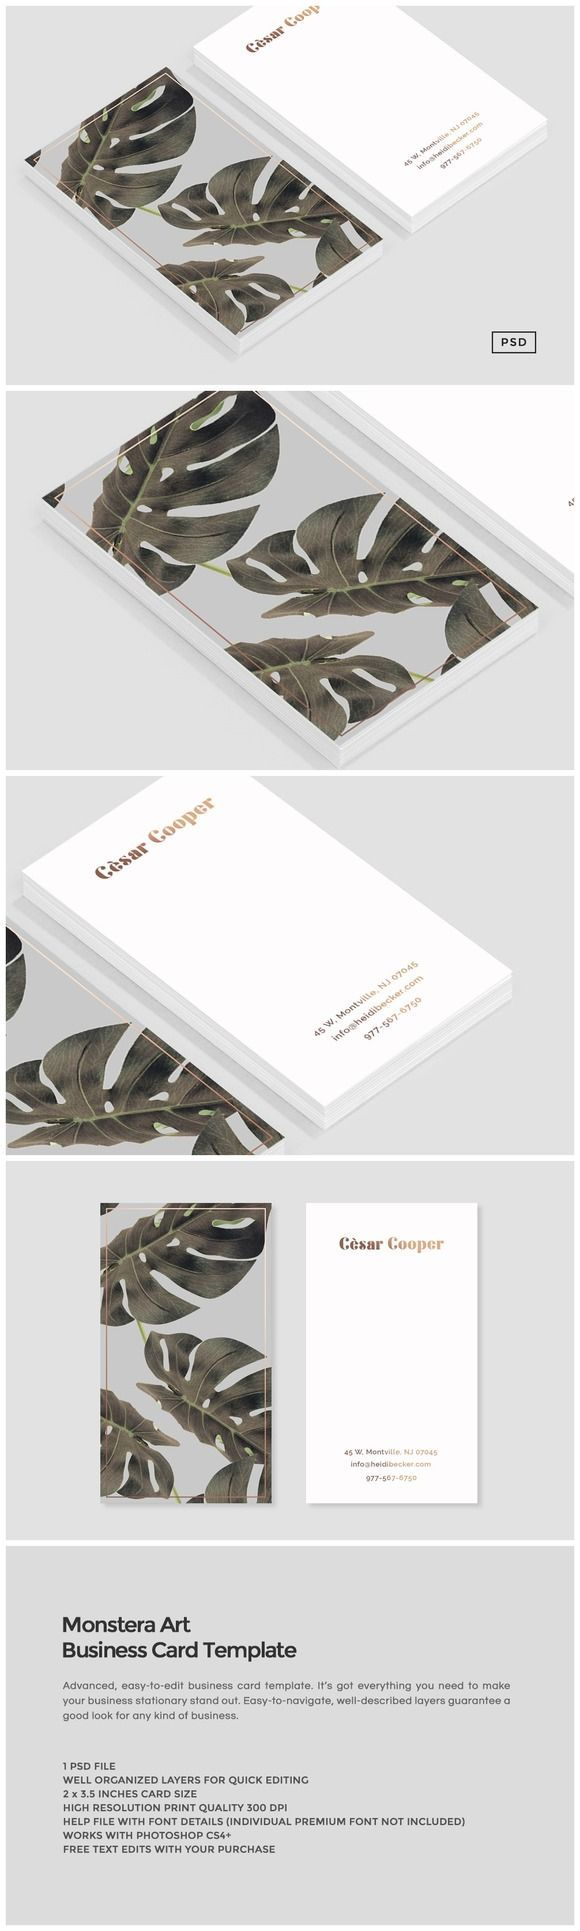 Monstera Art Business Card Template by Design Co. on Creative Market